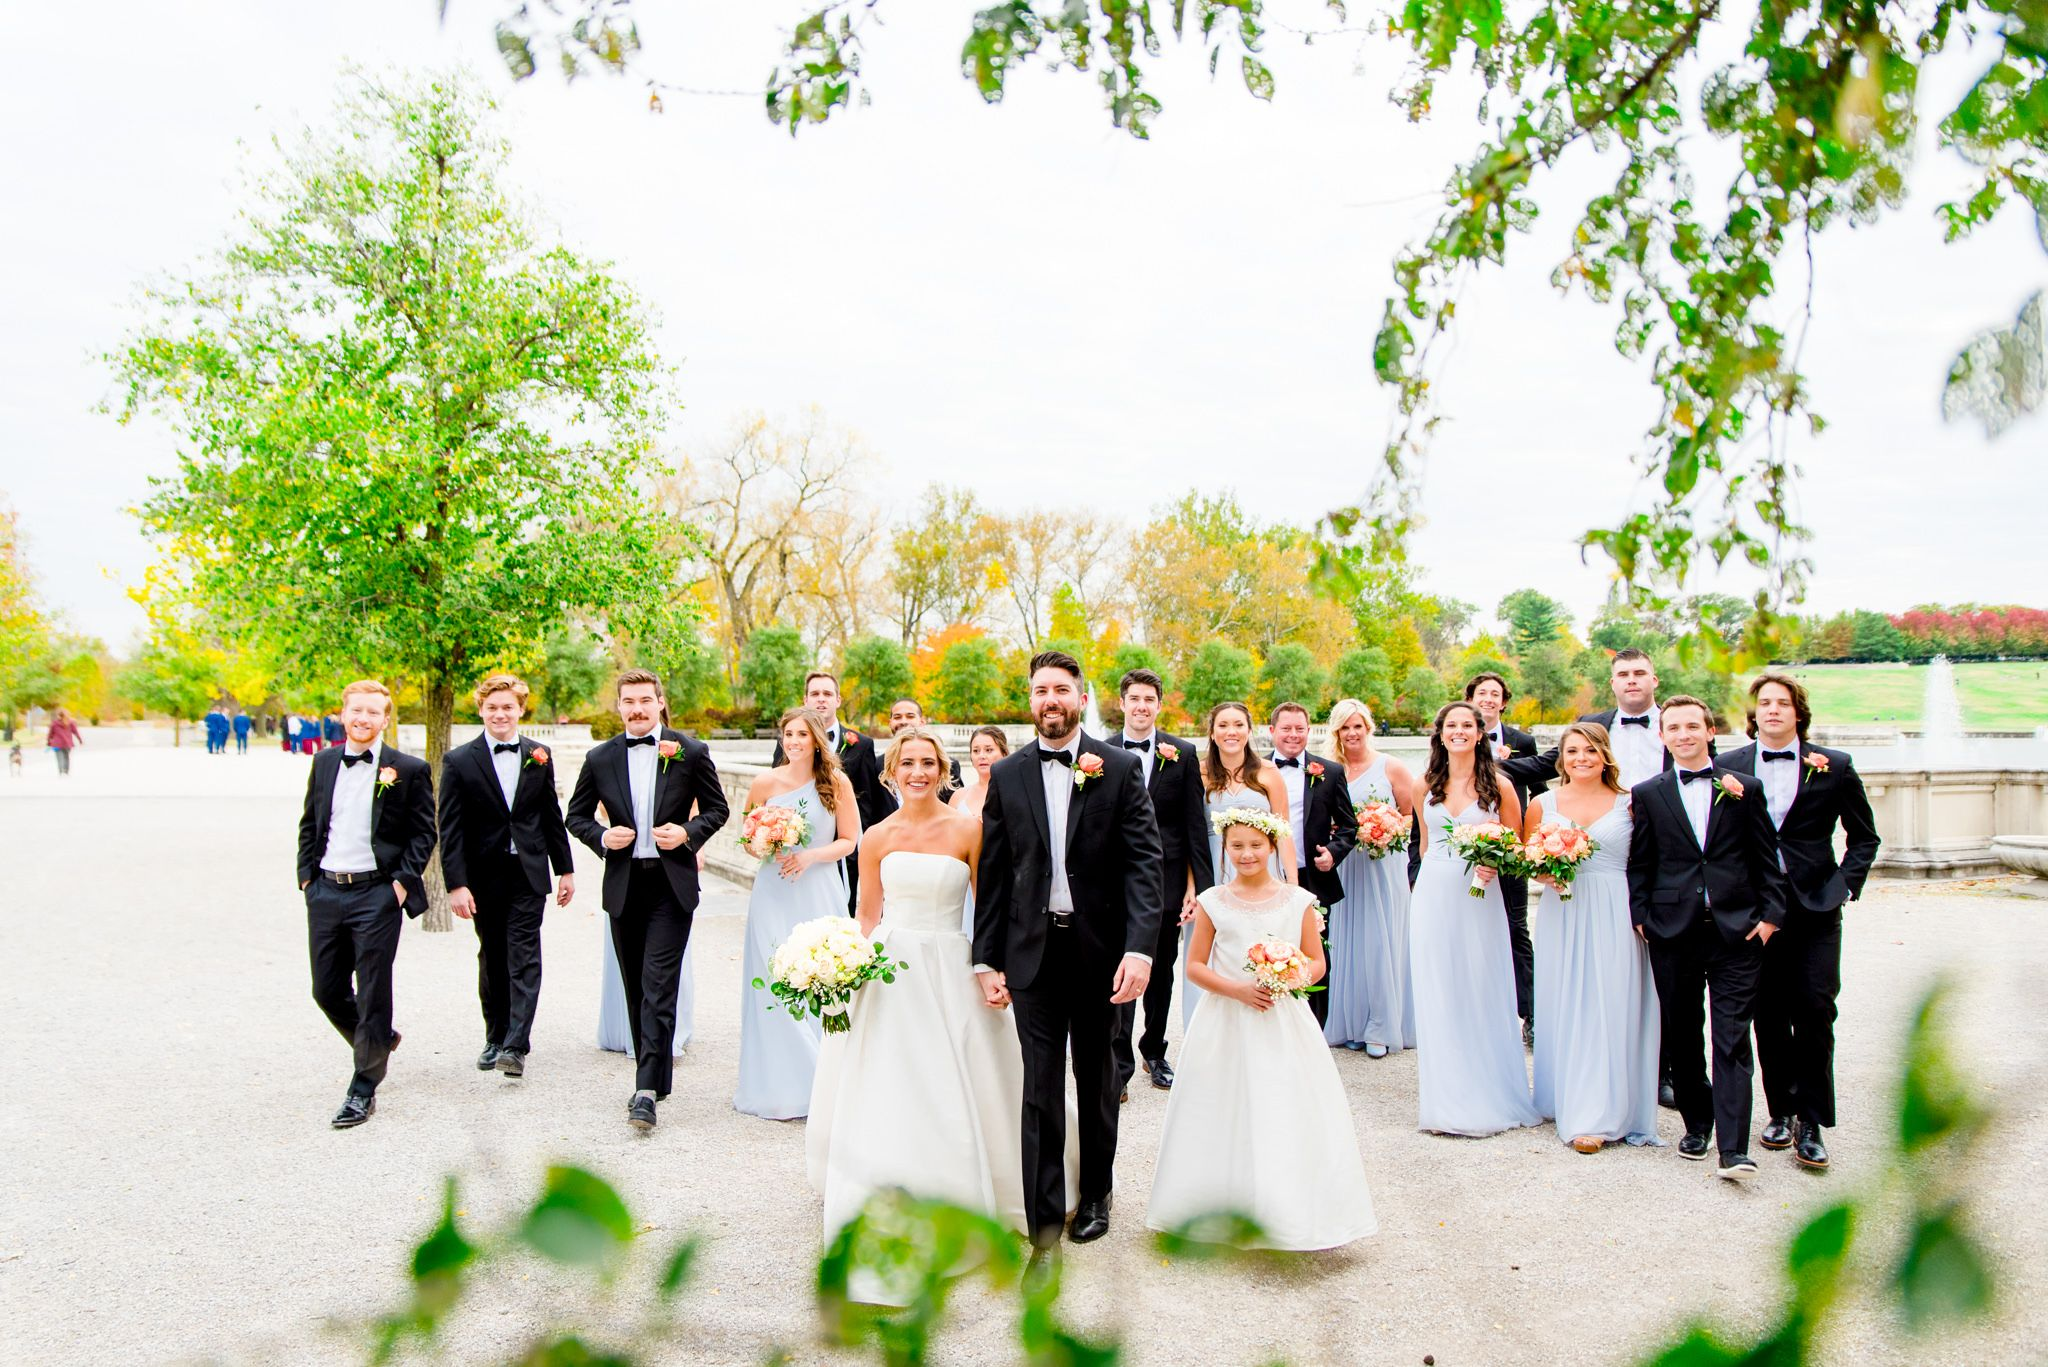 large wedding party in black suits and light blue dresses walk with bride and groom at Forest Park STL fall wedding